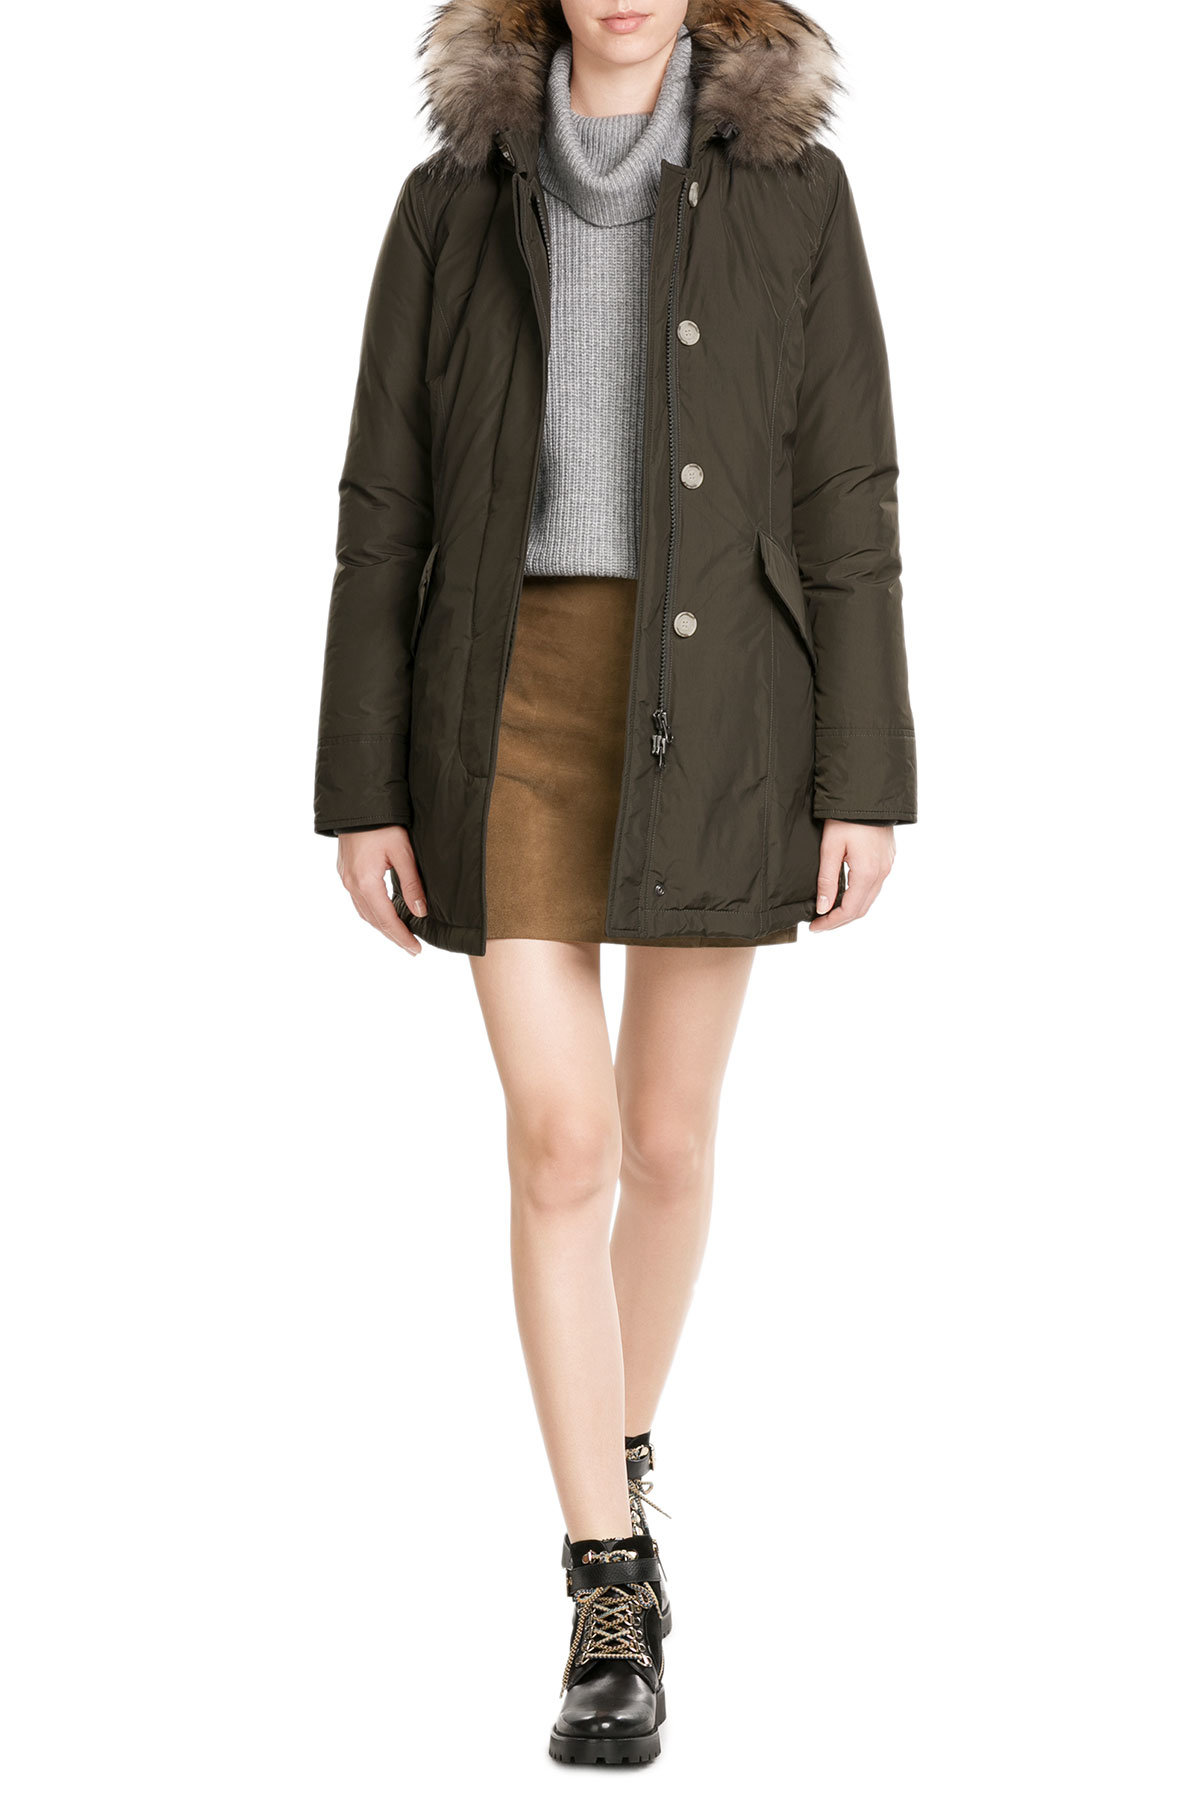 outlet store bacbf 7df4a Luxury Arctic Down Parka with Fur-Trimmed Hood - Woolrich | WOMEN | GB  STYLEBOP.com